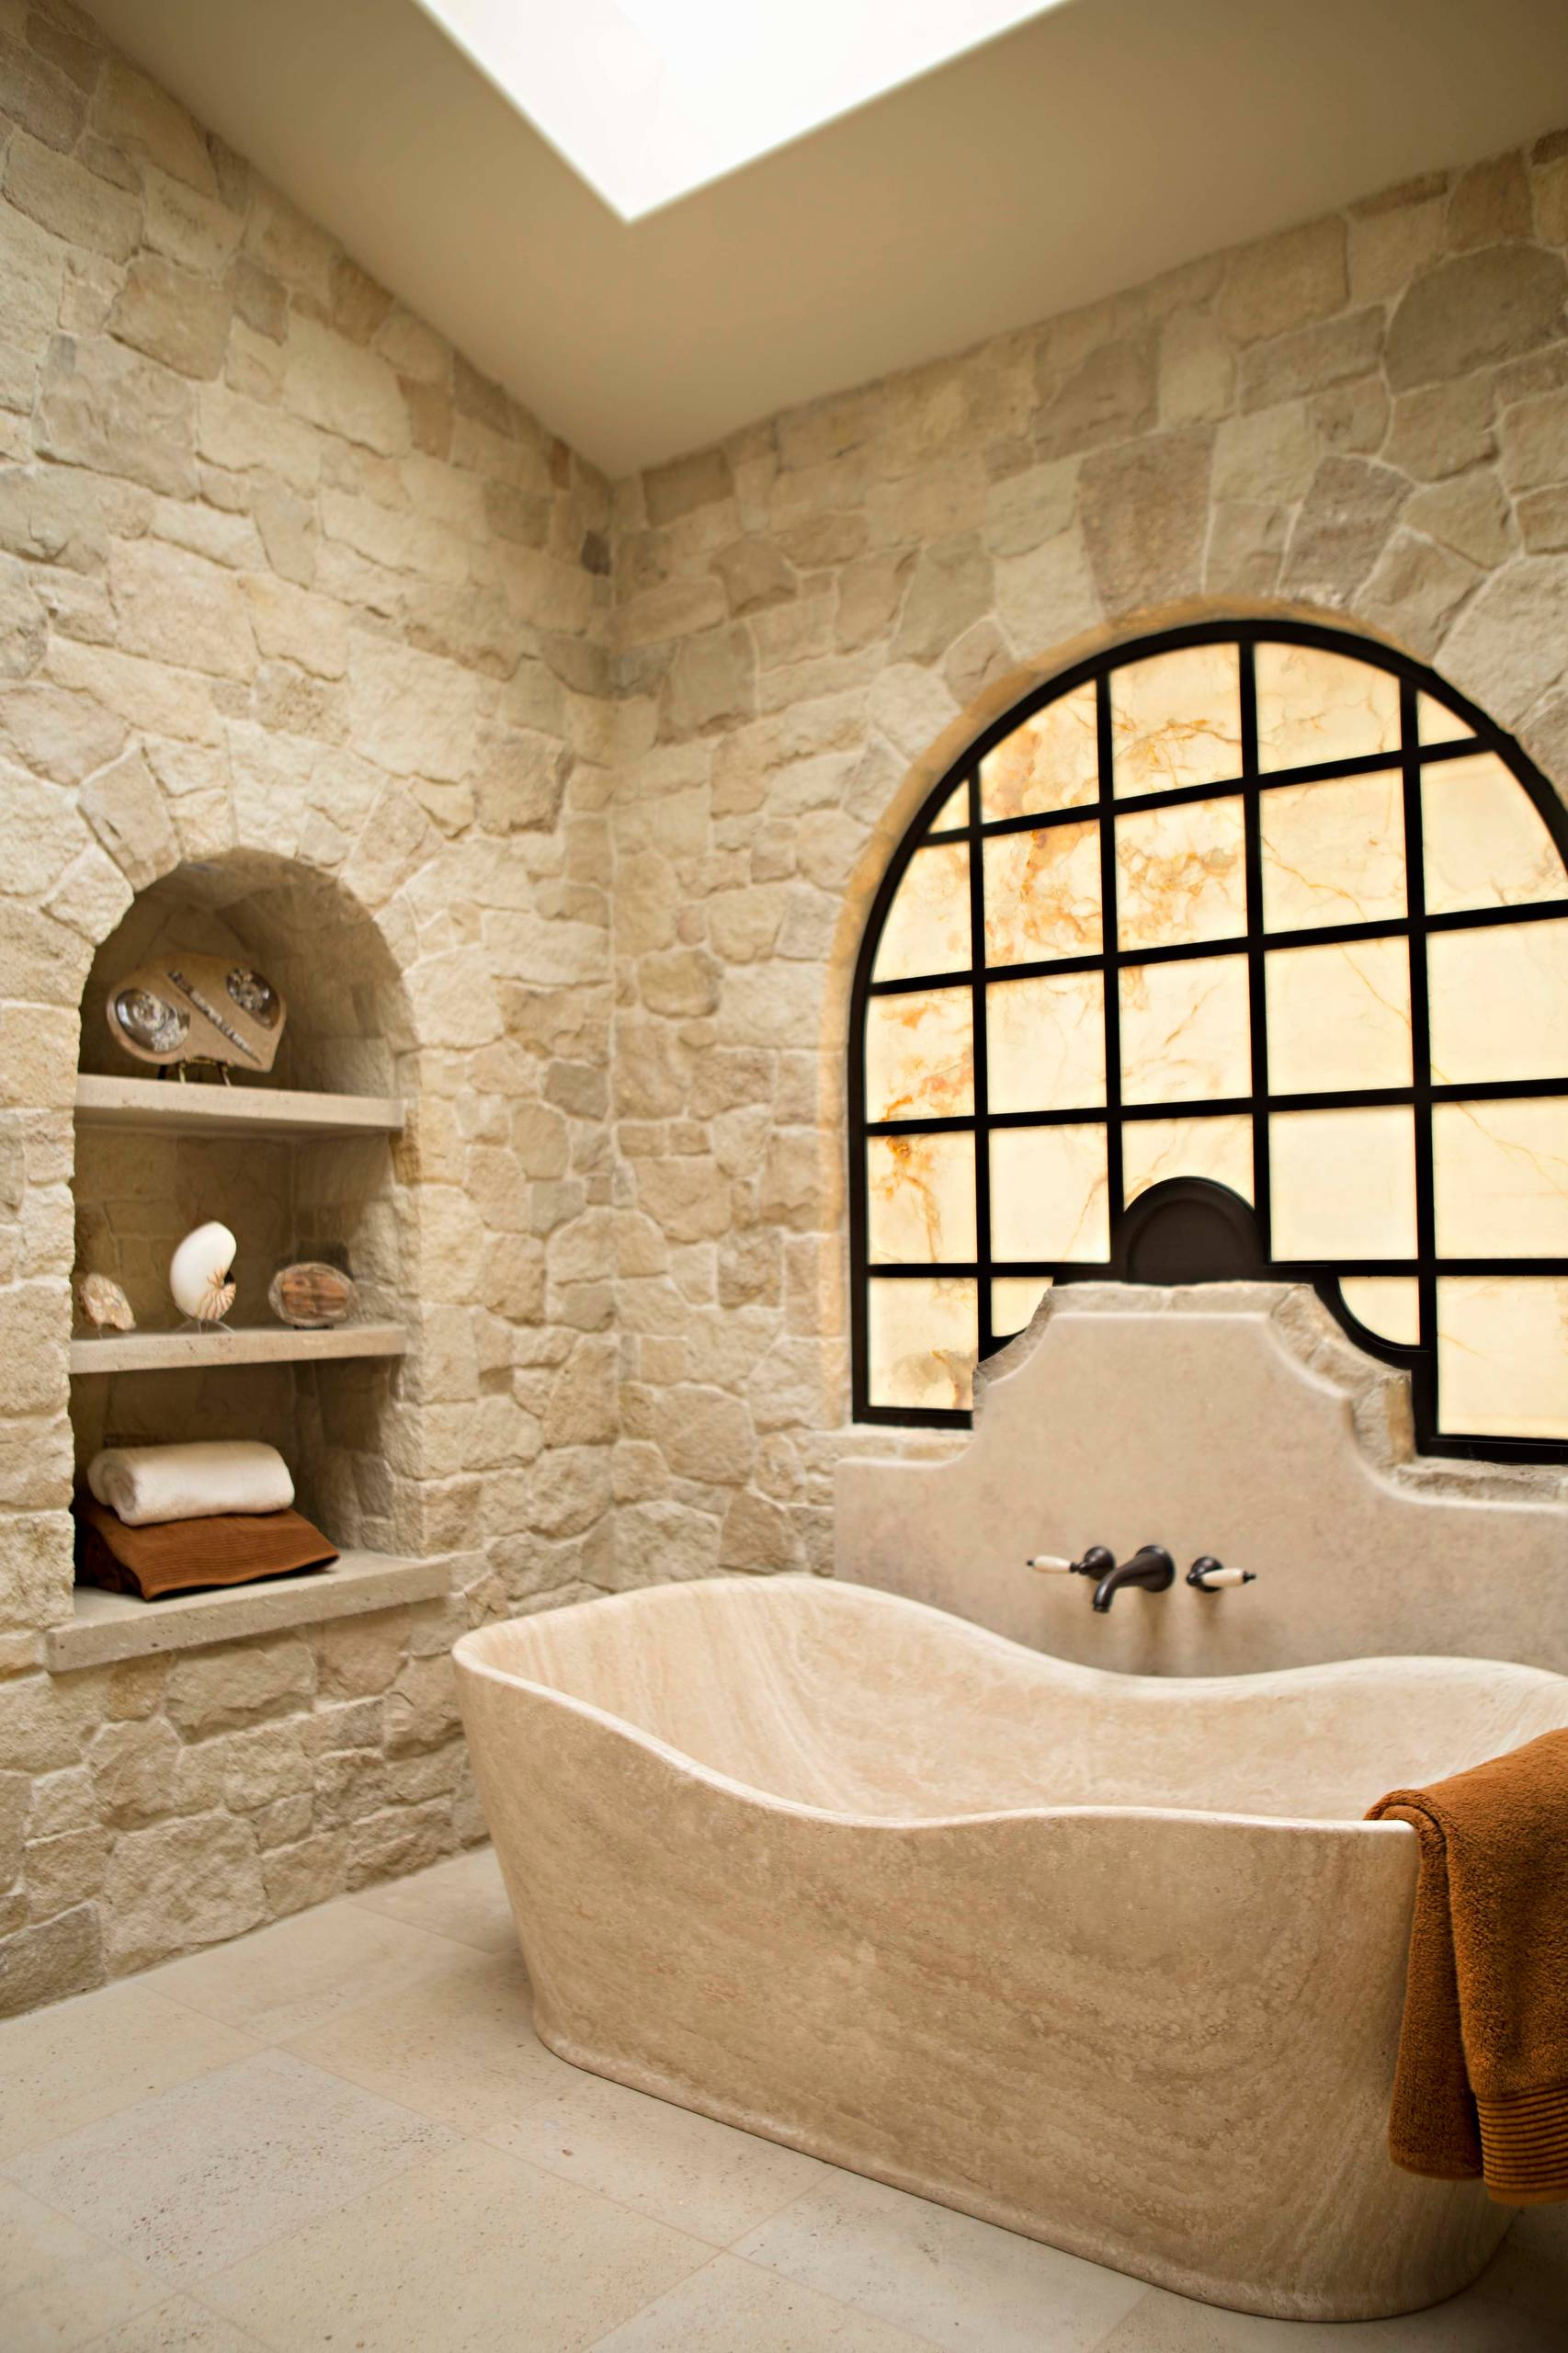 enchanting bathroom interior design ideas | 20 Enchanting Mediterranean Bathroom Designs You Must See